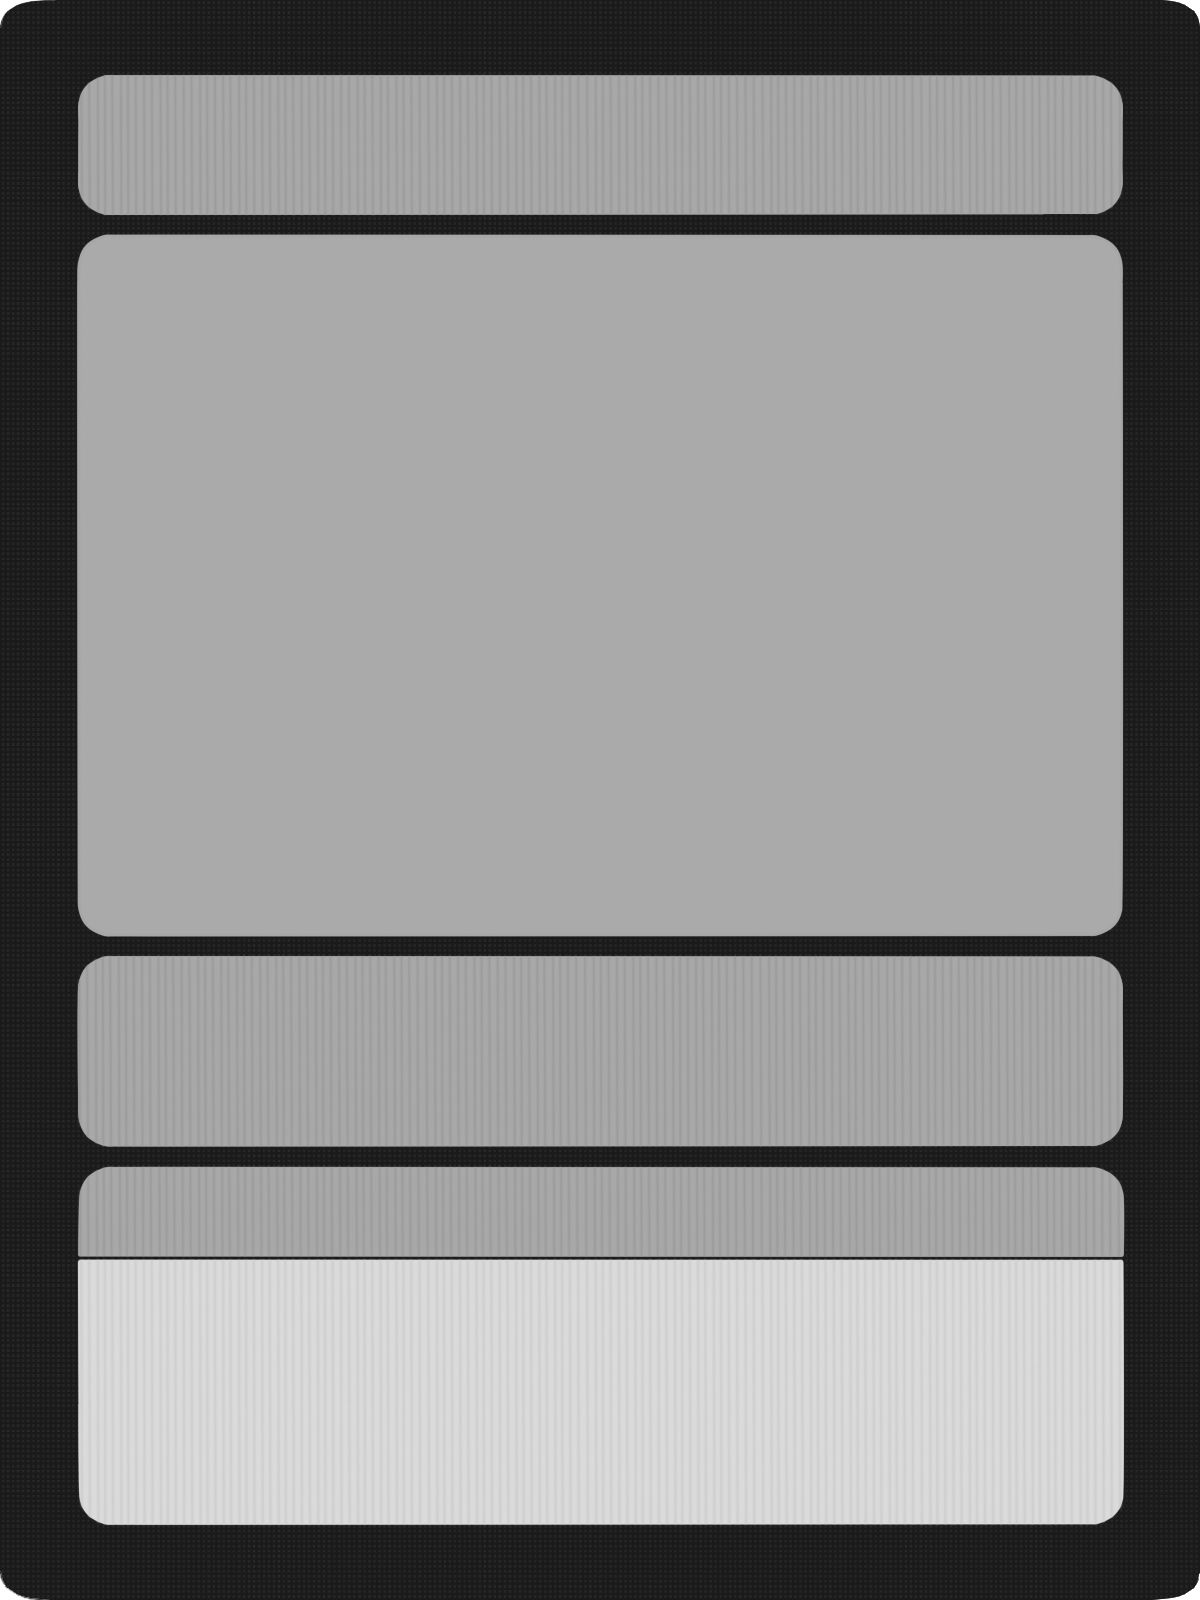 This Is A Free To Use Template For Those Wishing Intended For Blank Magic Card Template Business Professional Card Template Templates Professional Templates